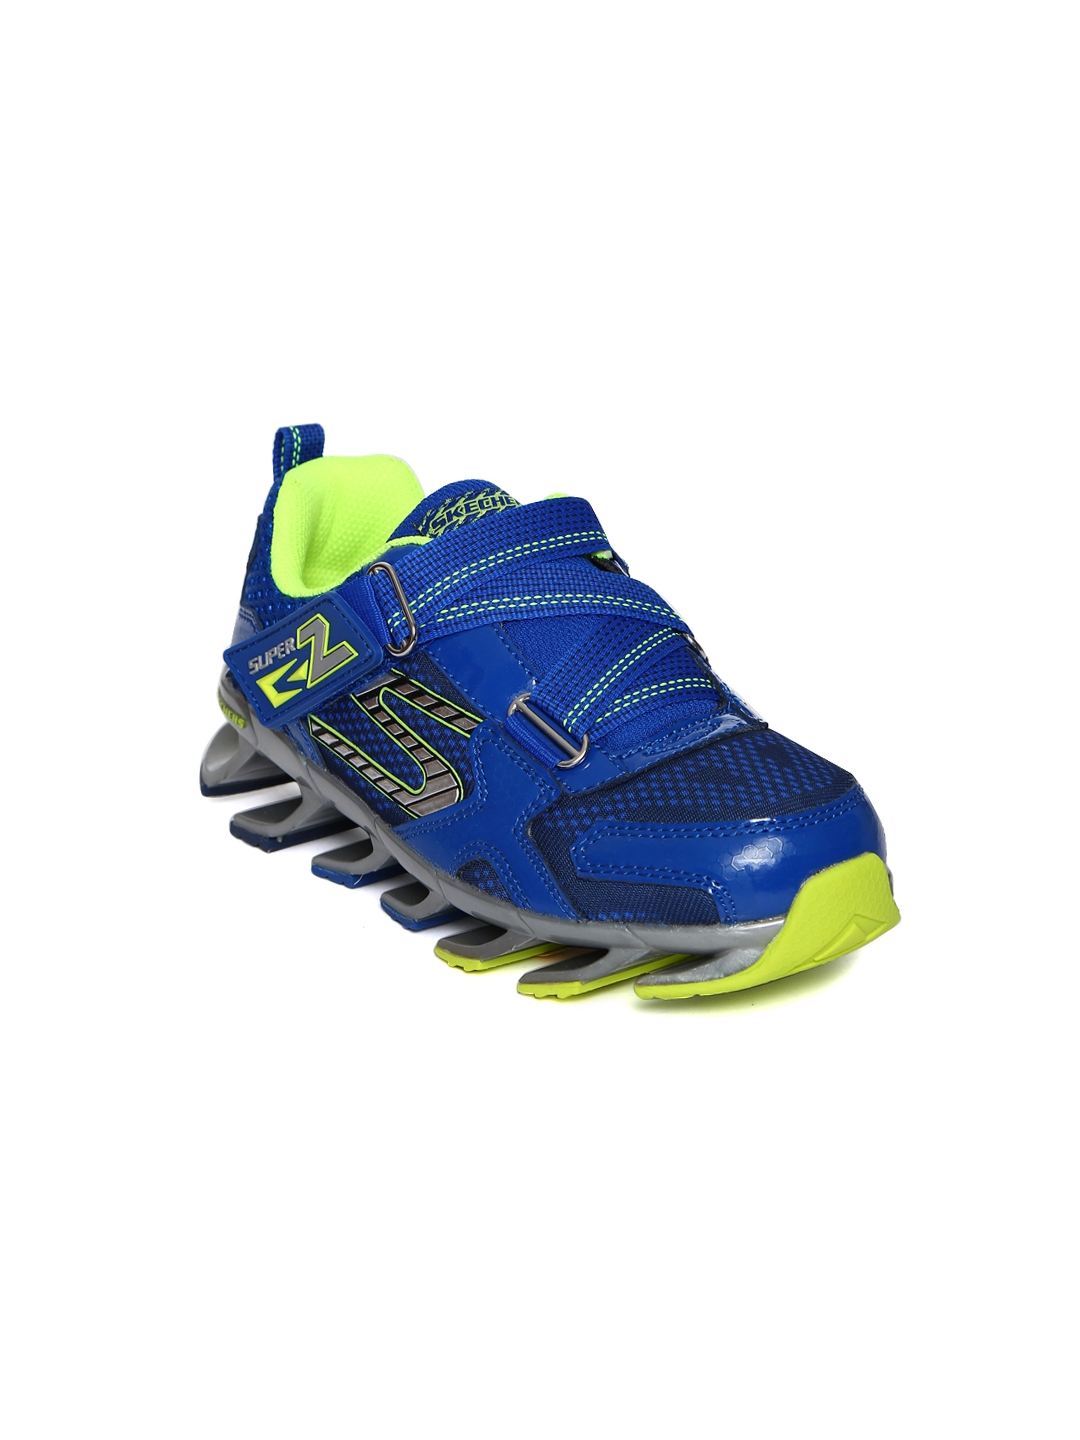 f9568f46eed0 Buy Skechers Boys Blue MEGA BLADE 2.0 Sneakers - Casual Shoes for ...